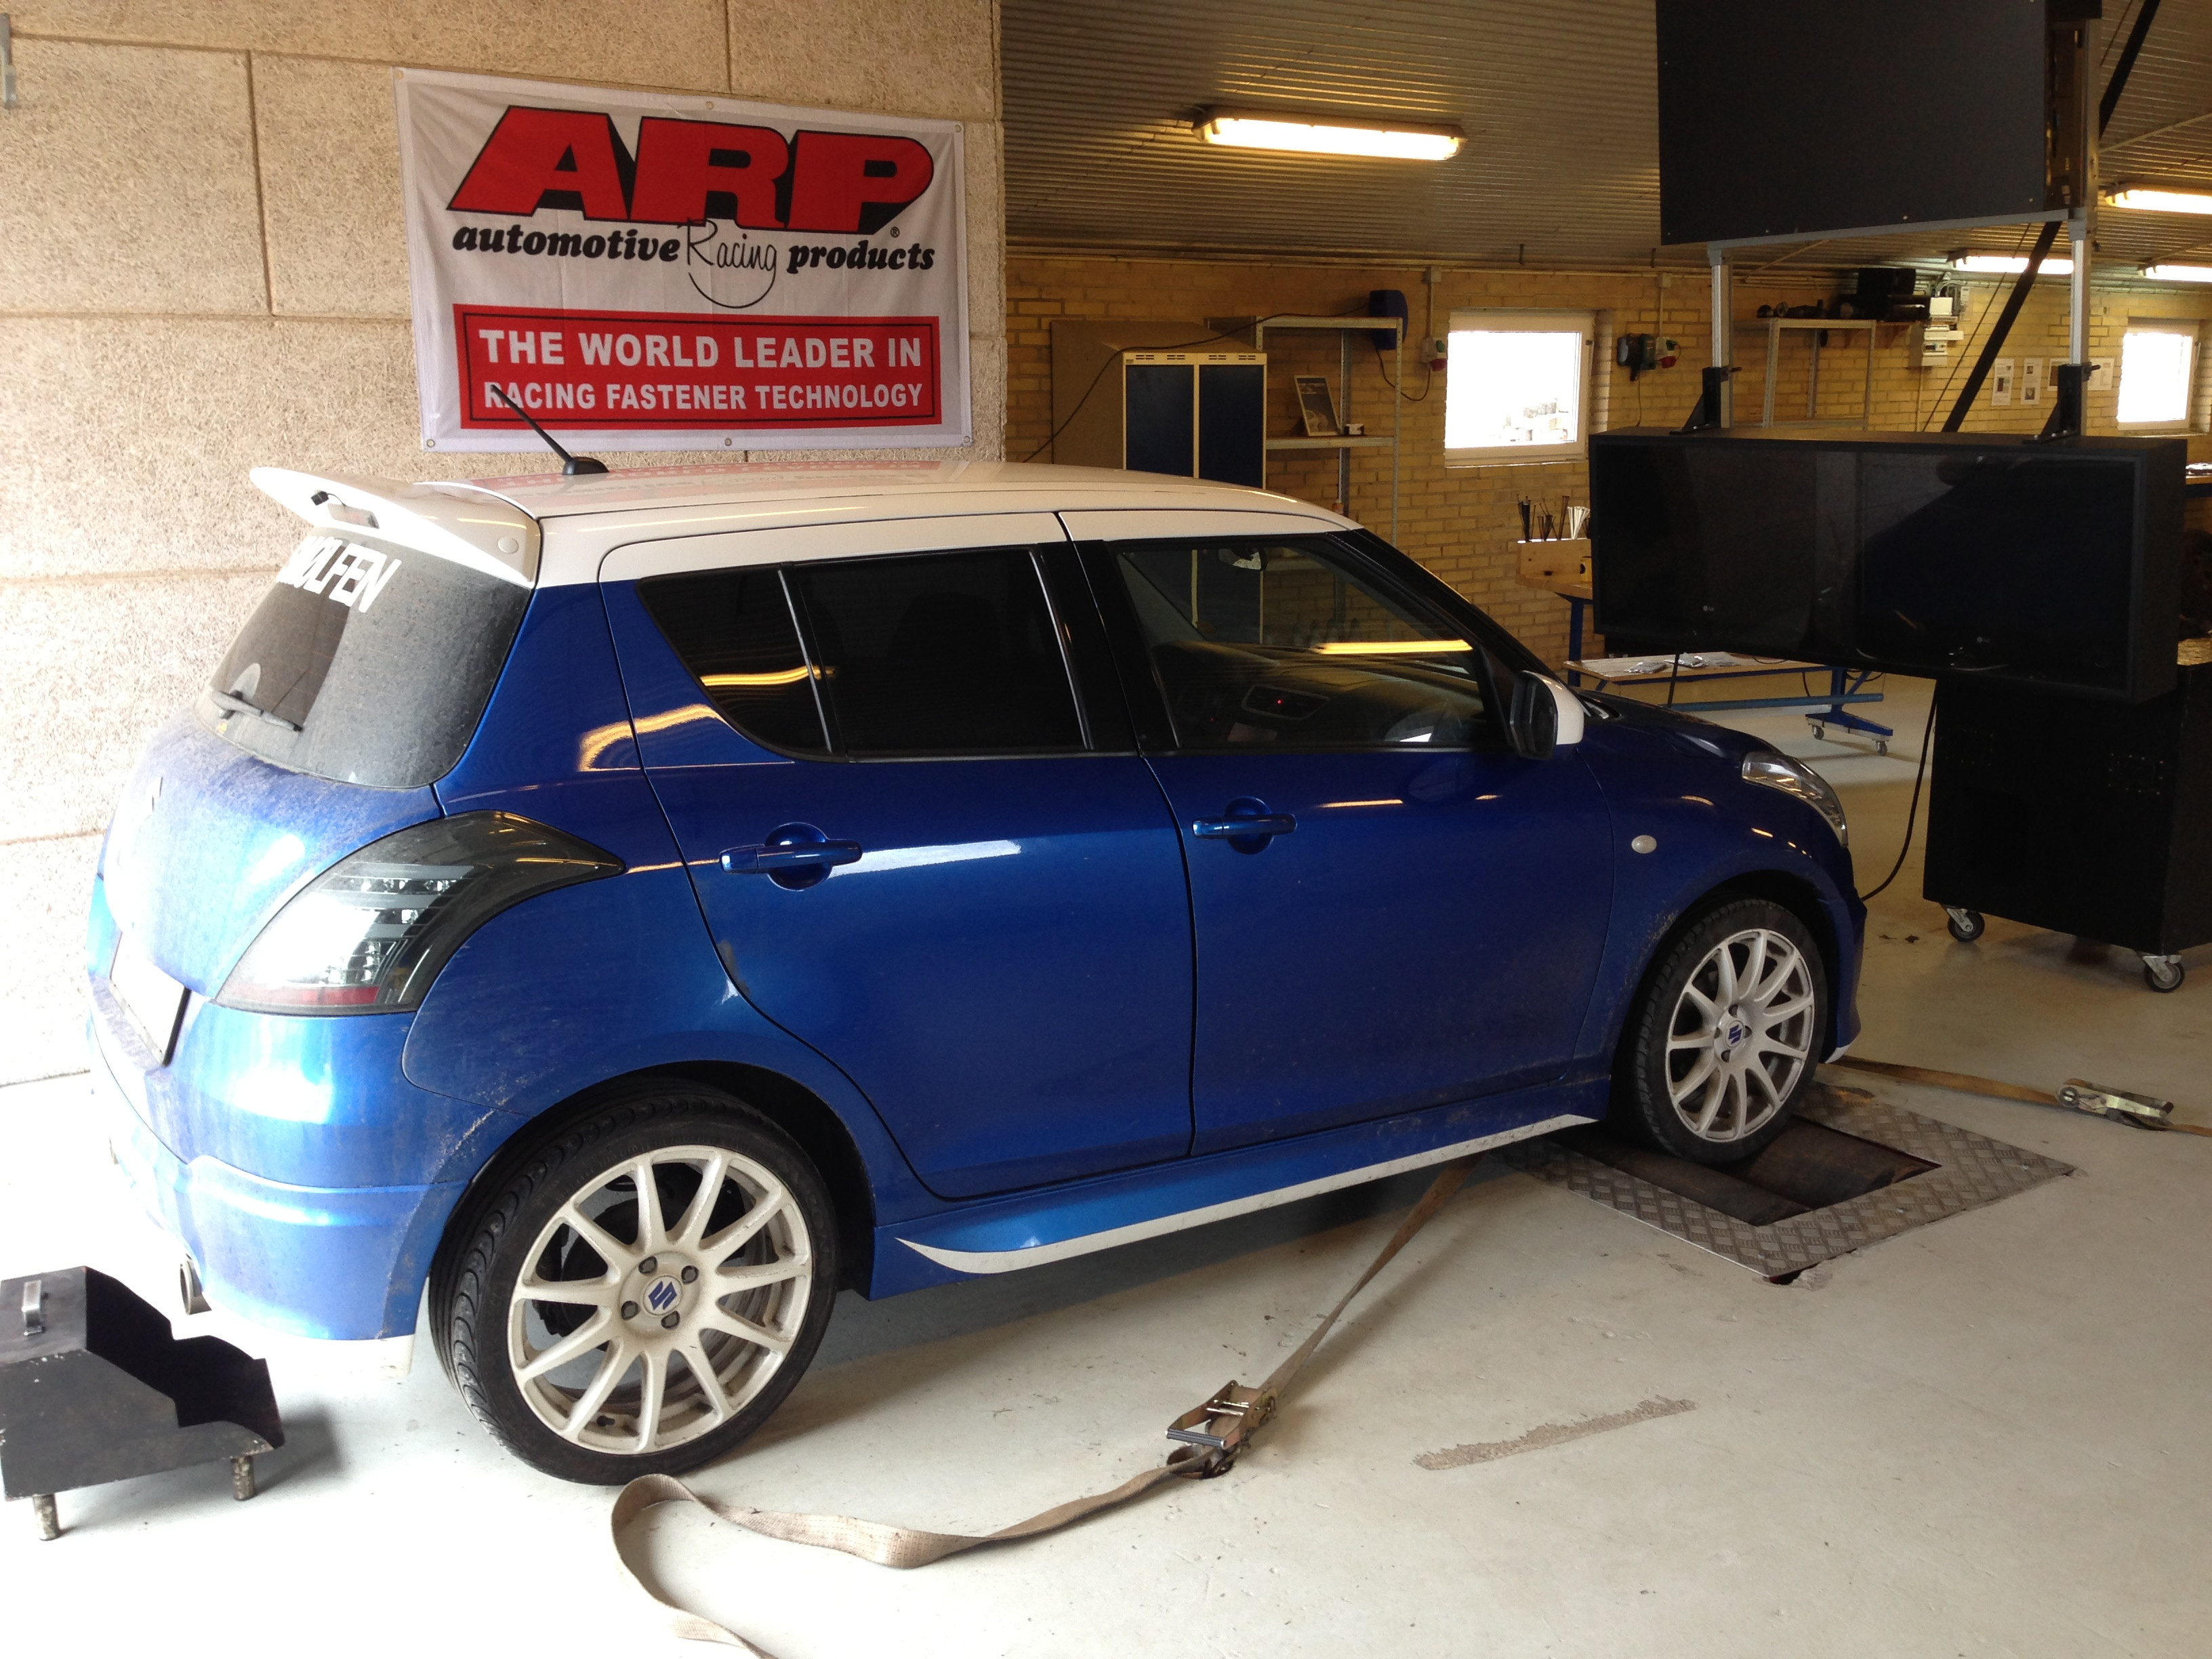 Suzuki Swift chiptuning (1)